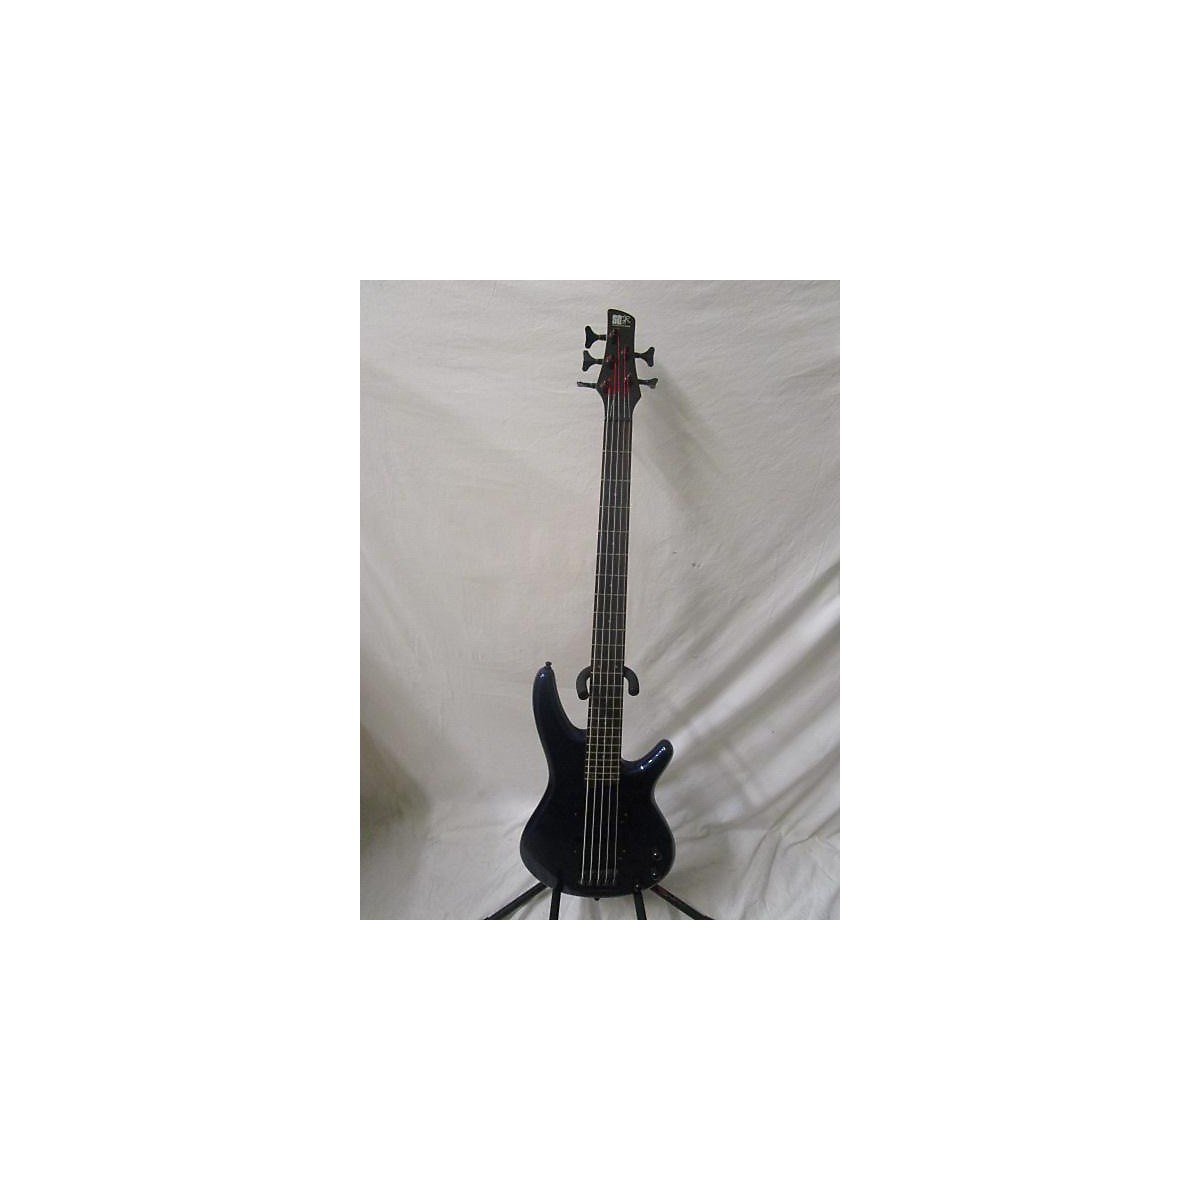 Ibanez DWB35 Electric Bass Guitar